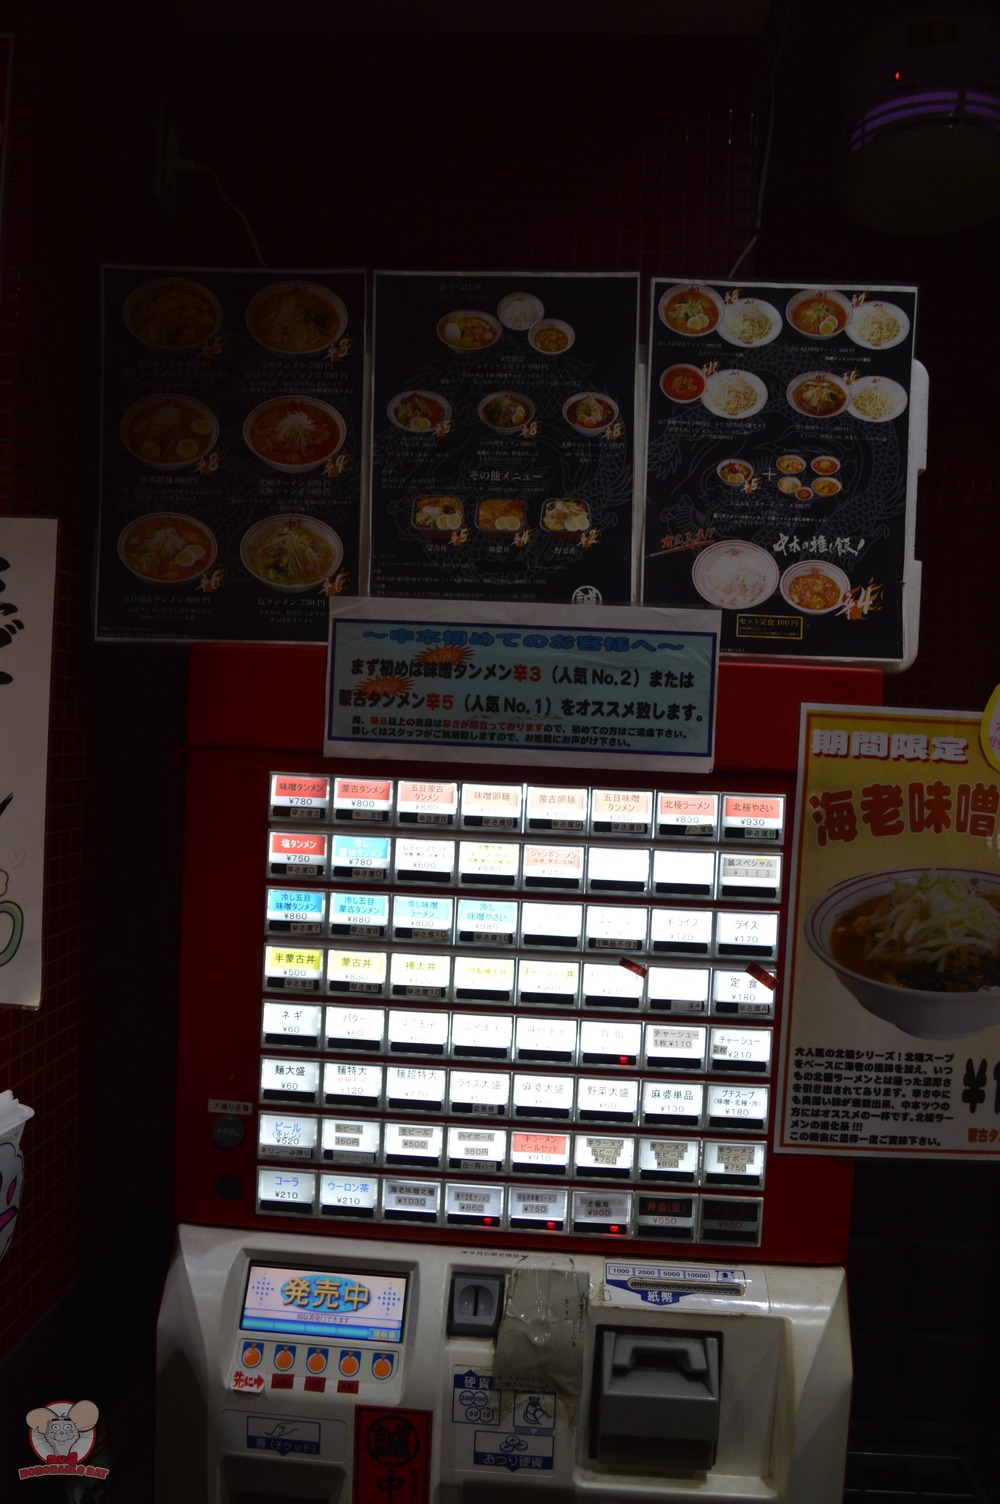 Menu and ticket machine